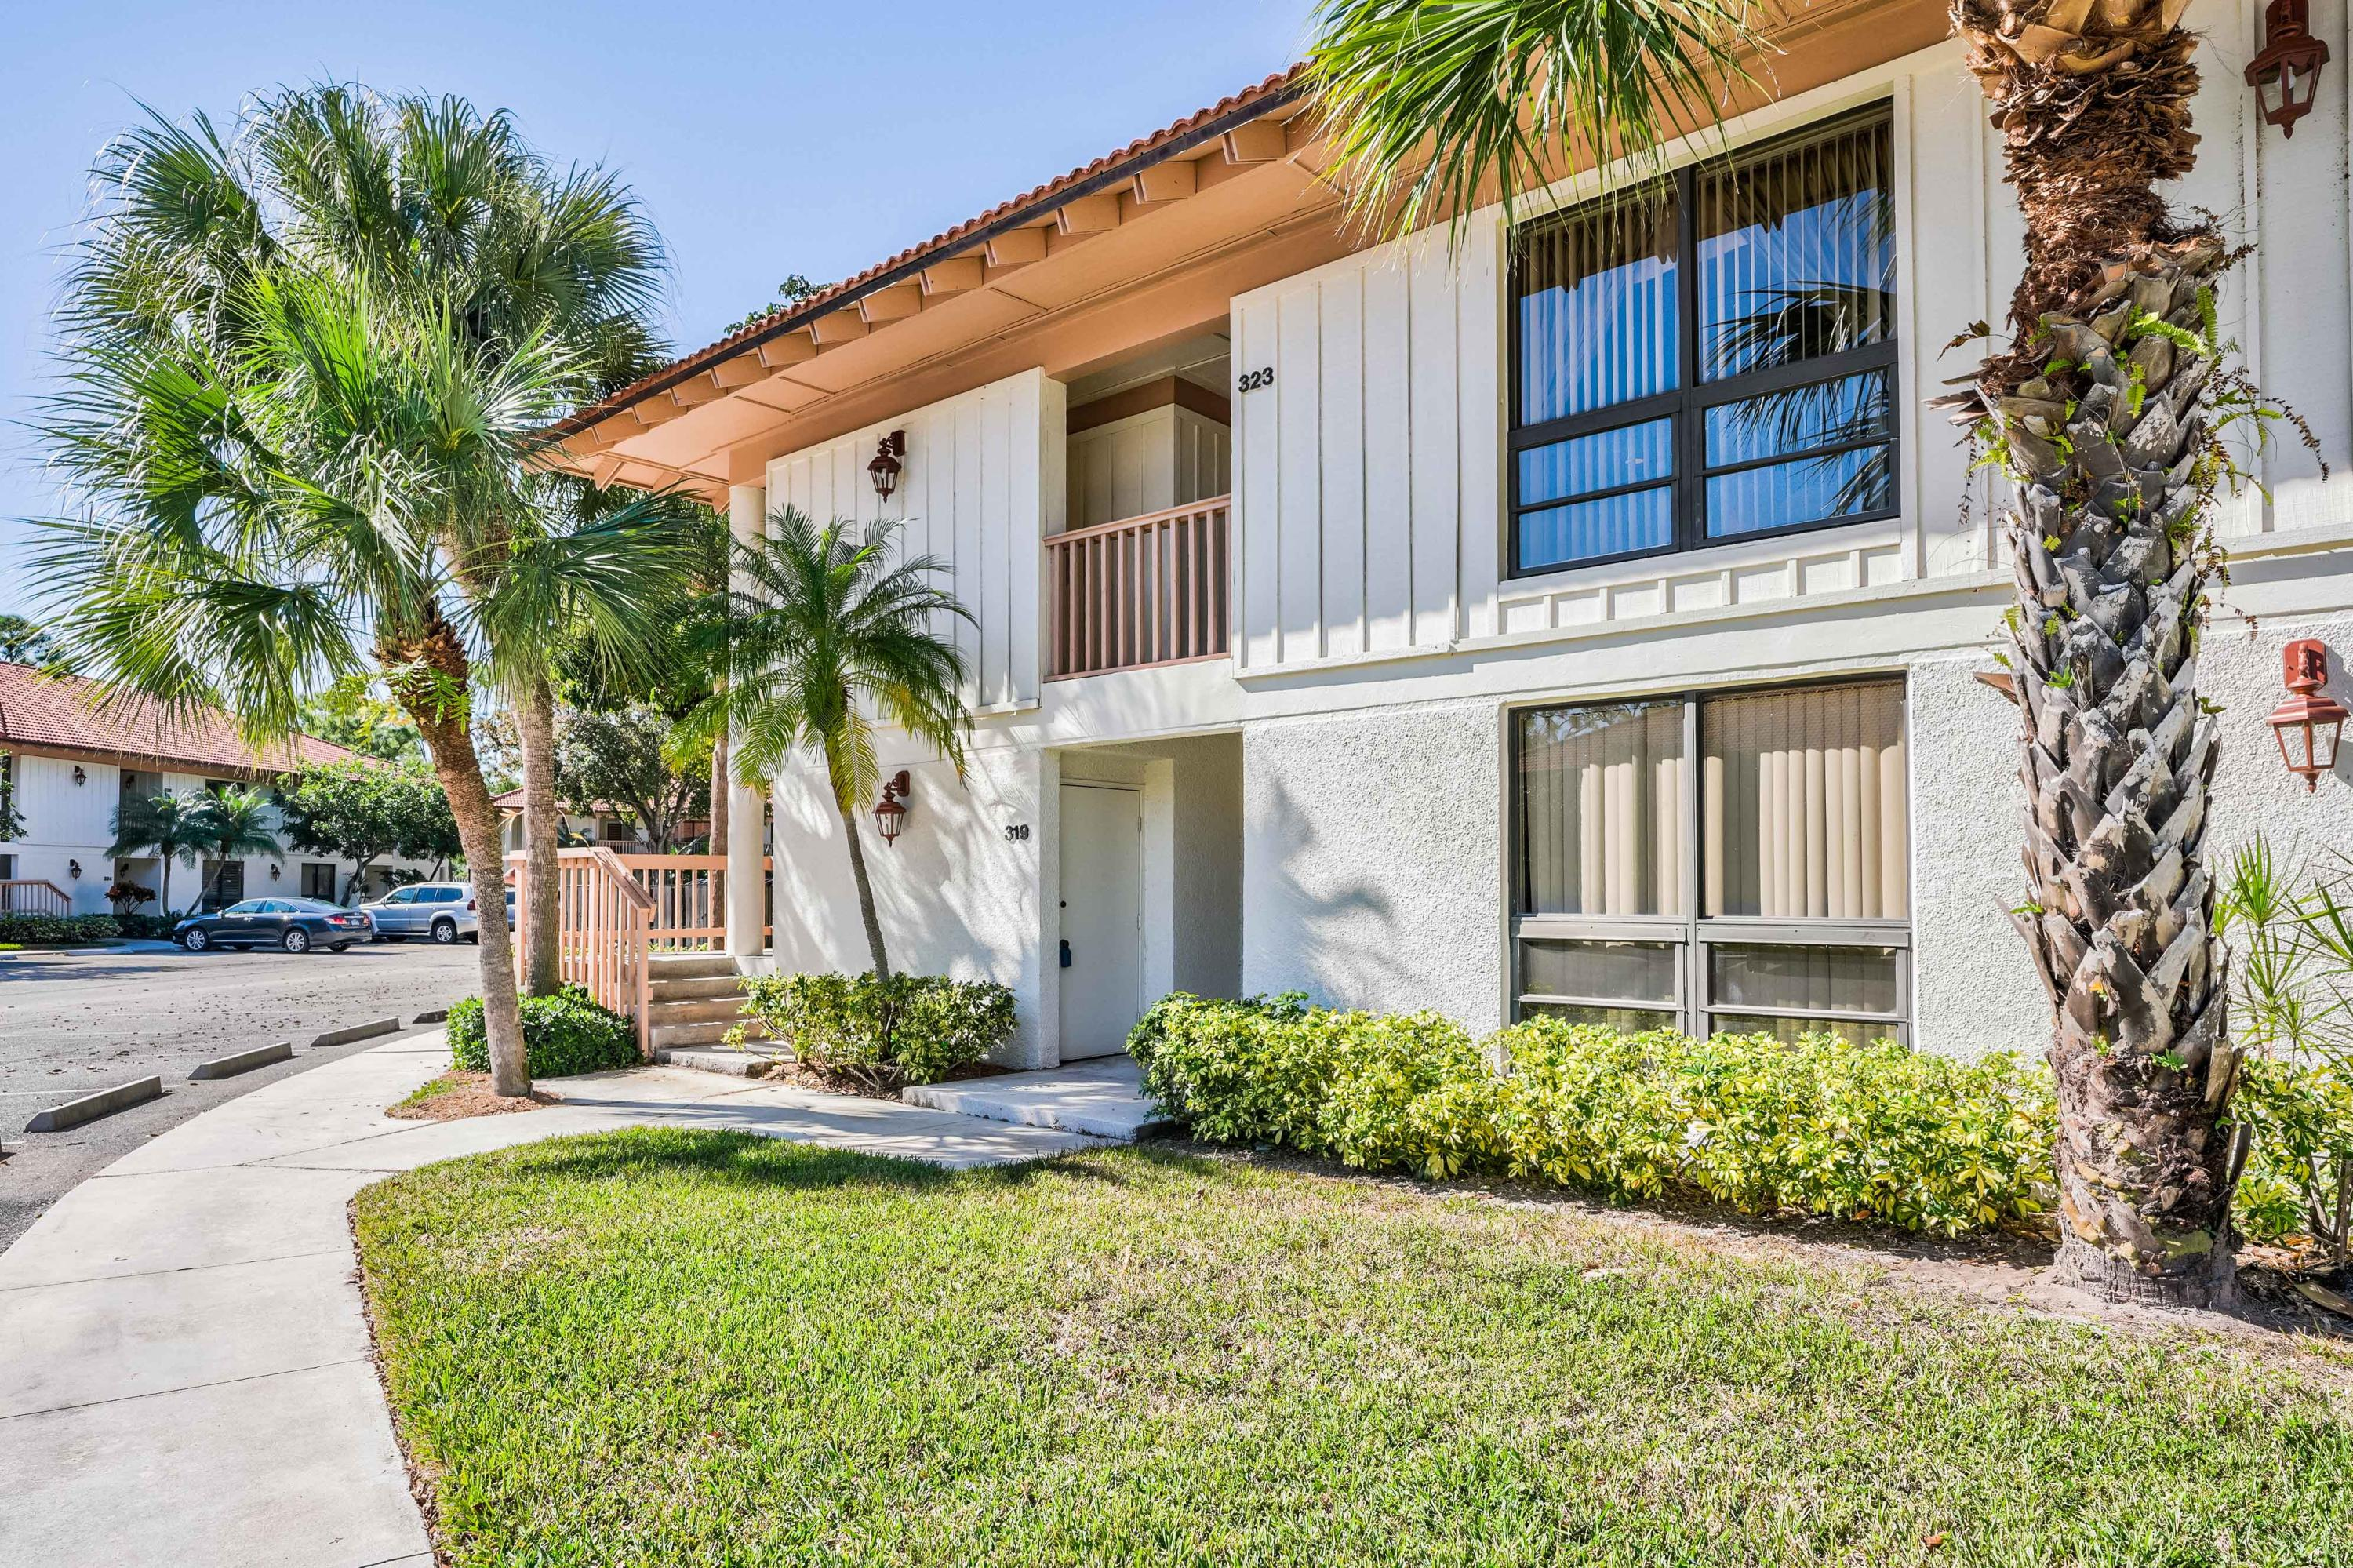 323 Brackenwood Circle, Palm Beach Gardens, Florida 33418, 2 Bedrooms Bedrooms, ,2 BathroomsBathrooms,A,Condominium,Brackenwood,RX-10495171